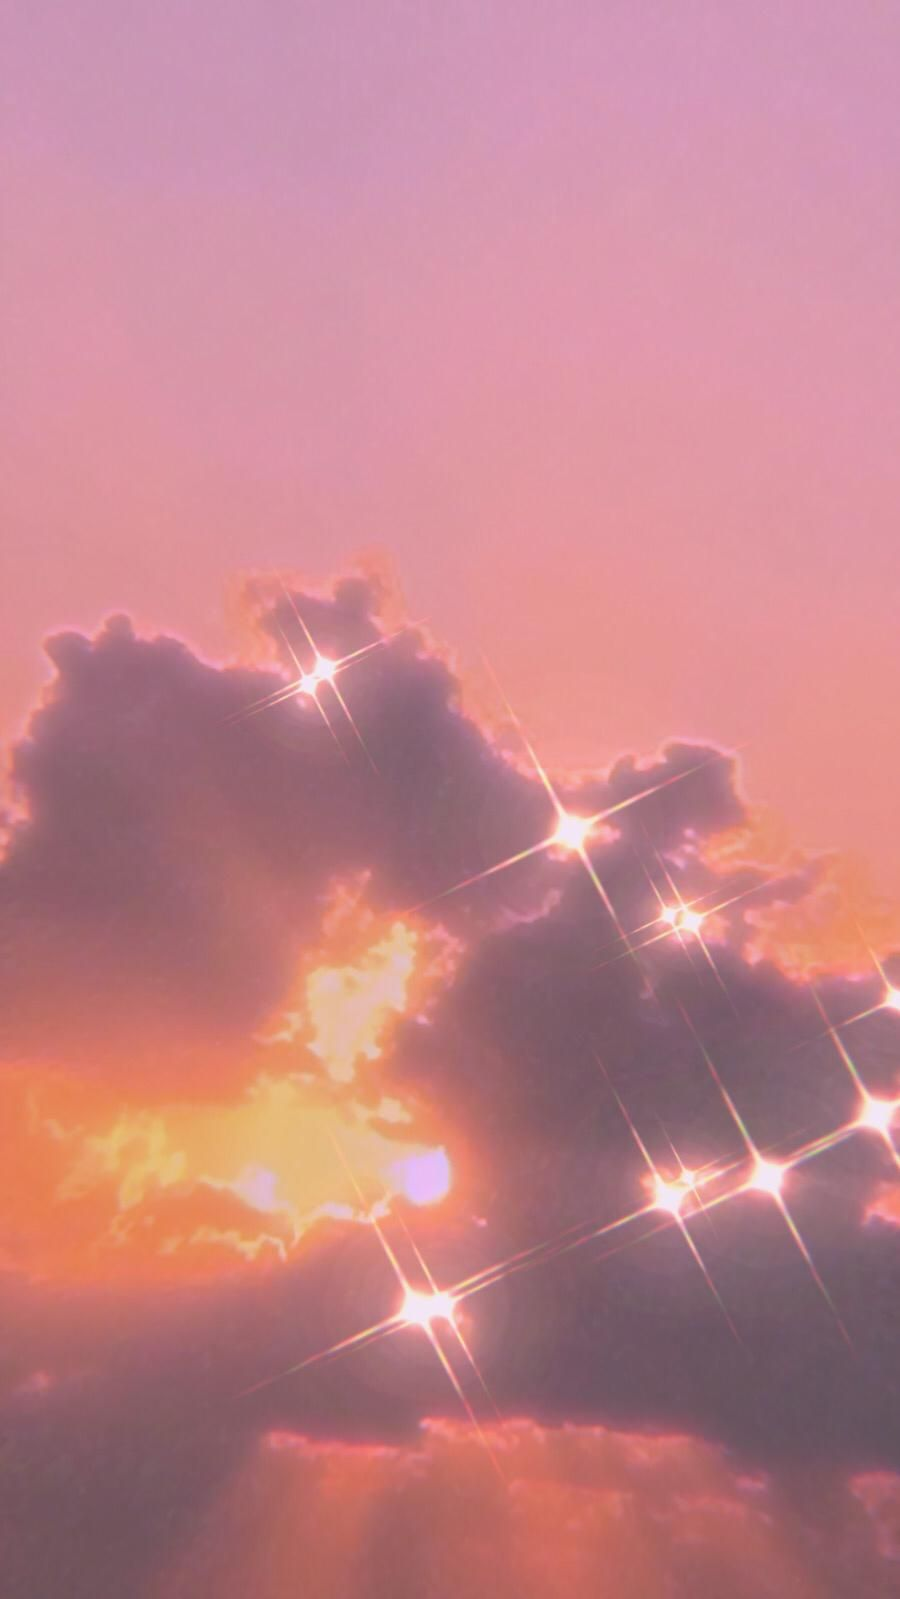 Shiny Clouds Shiny Wallpaper Aesthetic Wallpapers Aesthetic Backgrounds Aesthetic rose gold clouds wallpaper